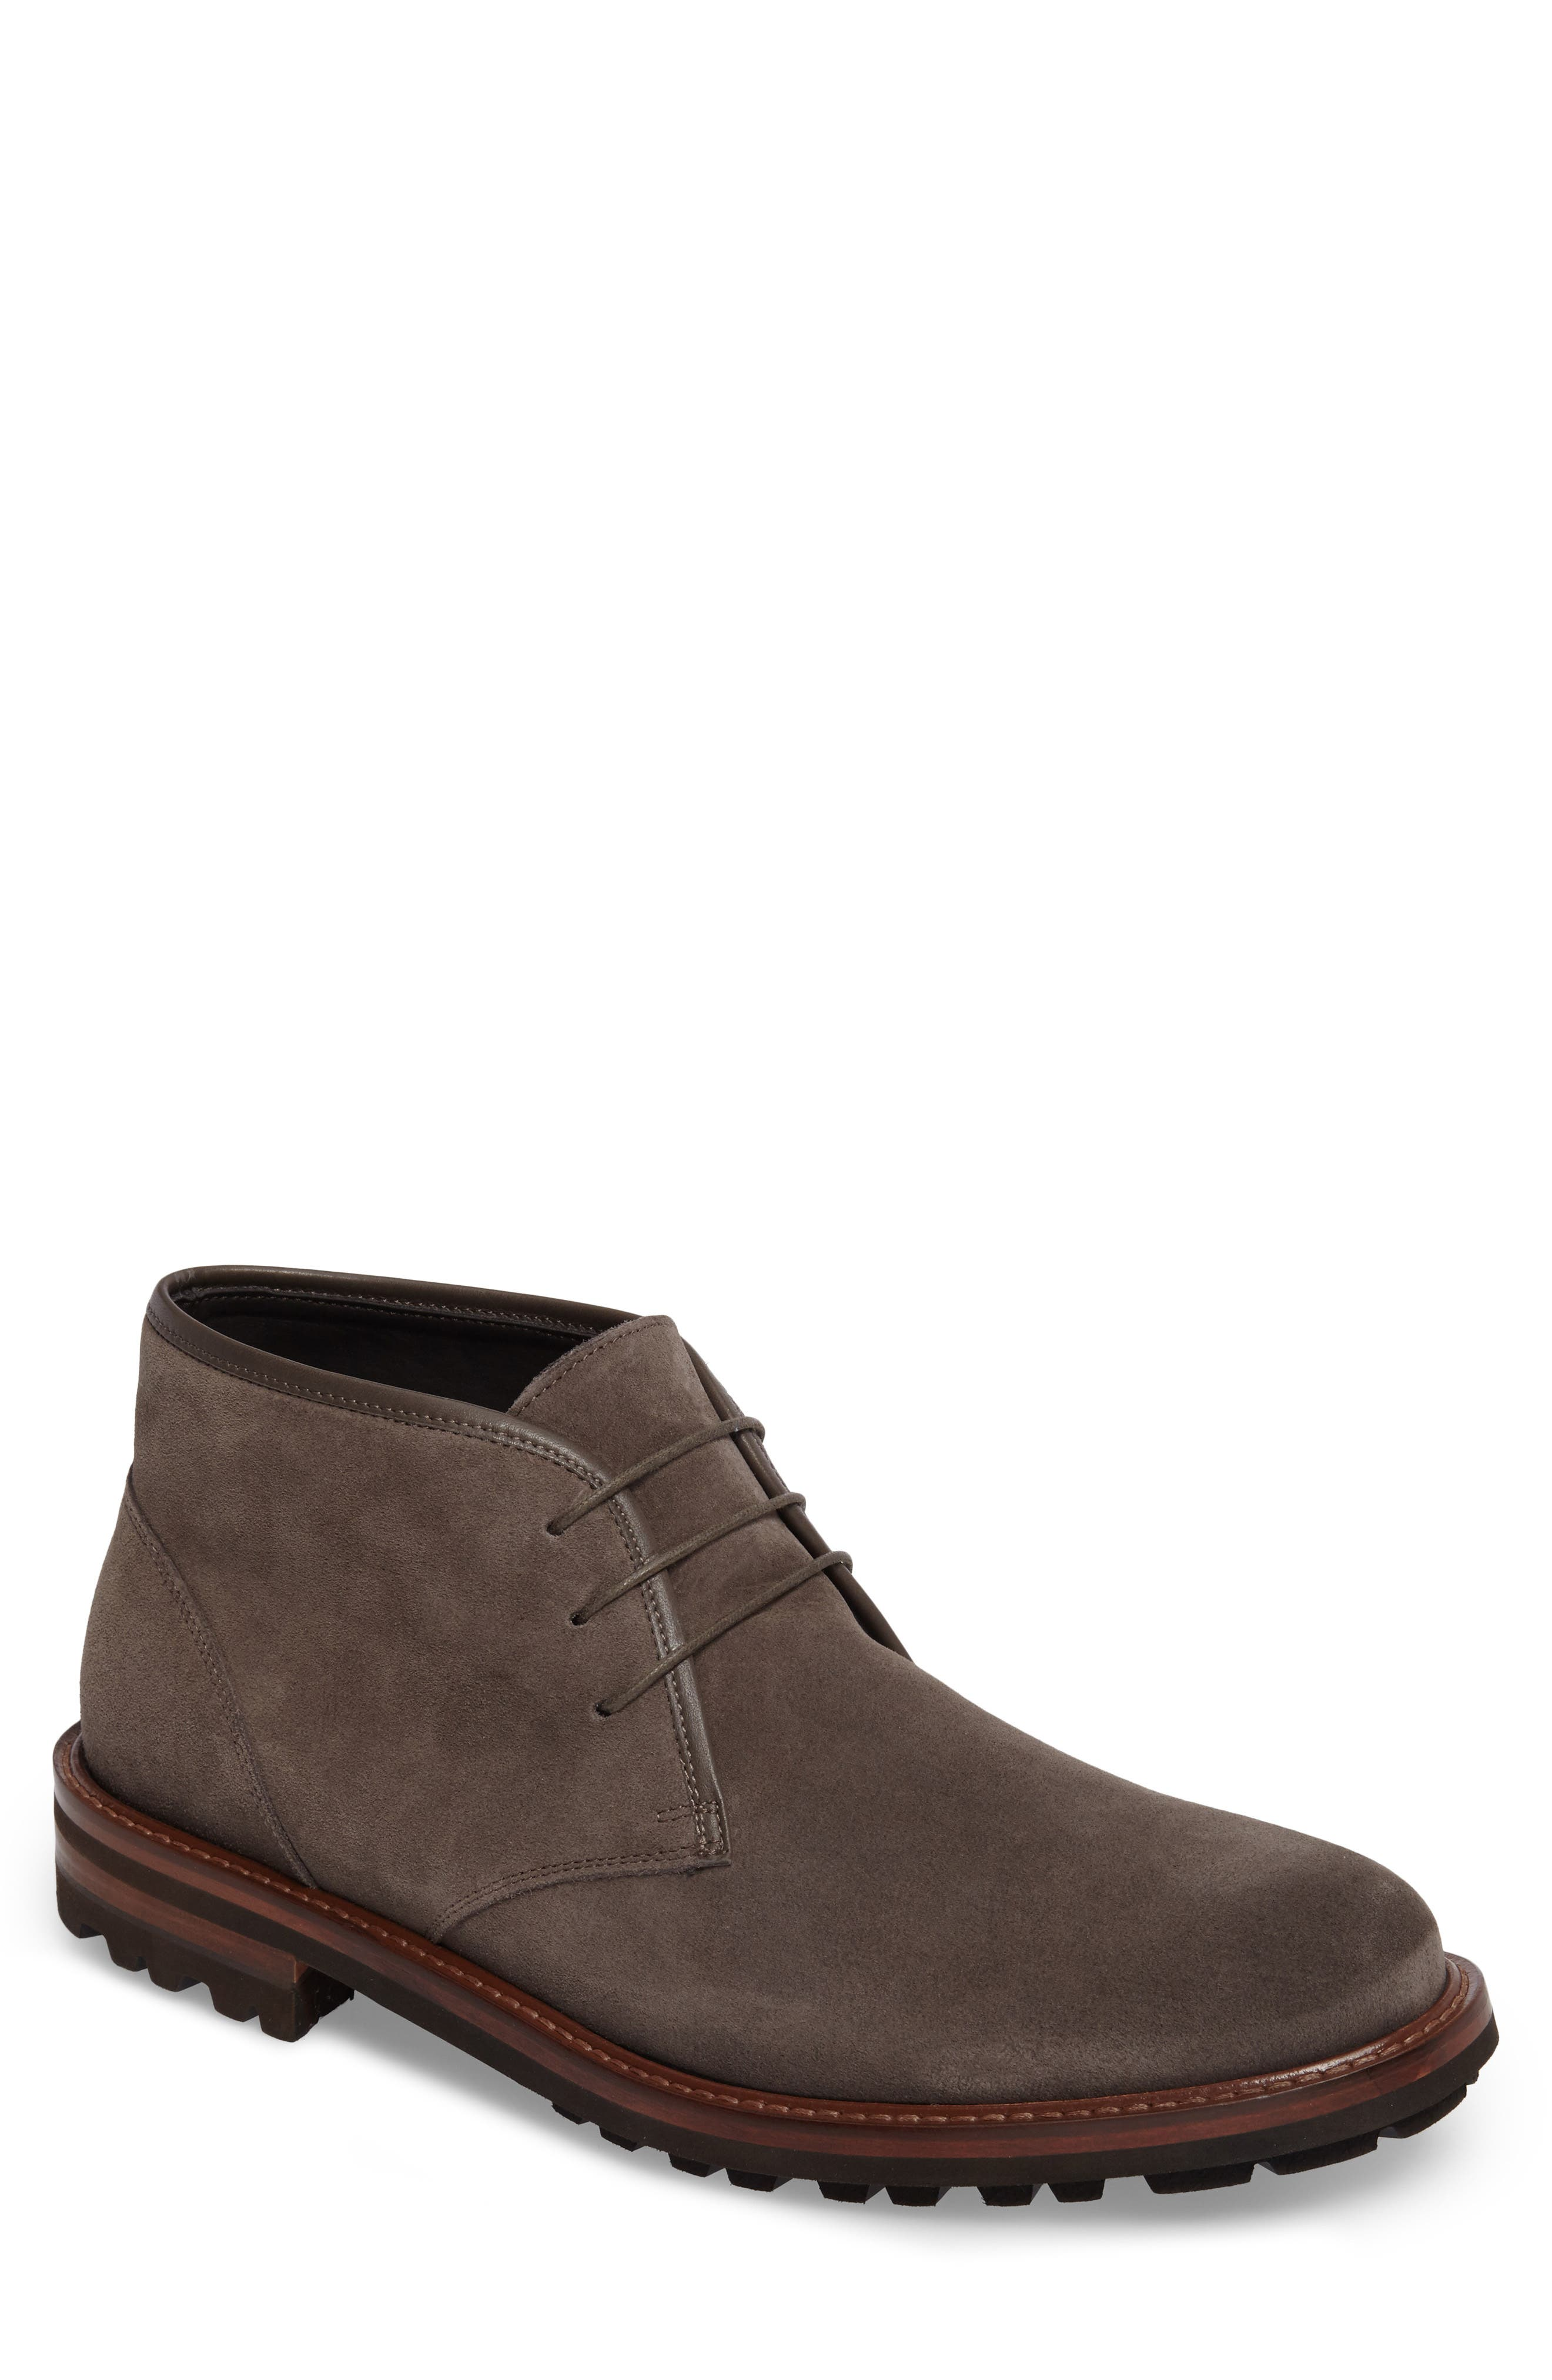 Monte Rosso Brixen Waterproof Chukka Boot (Men)